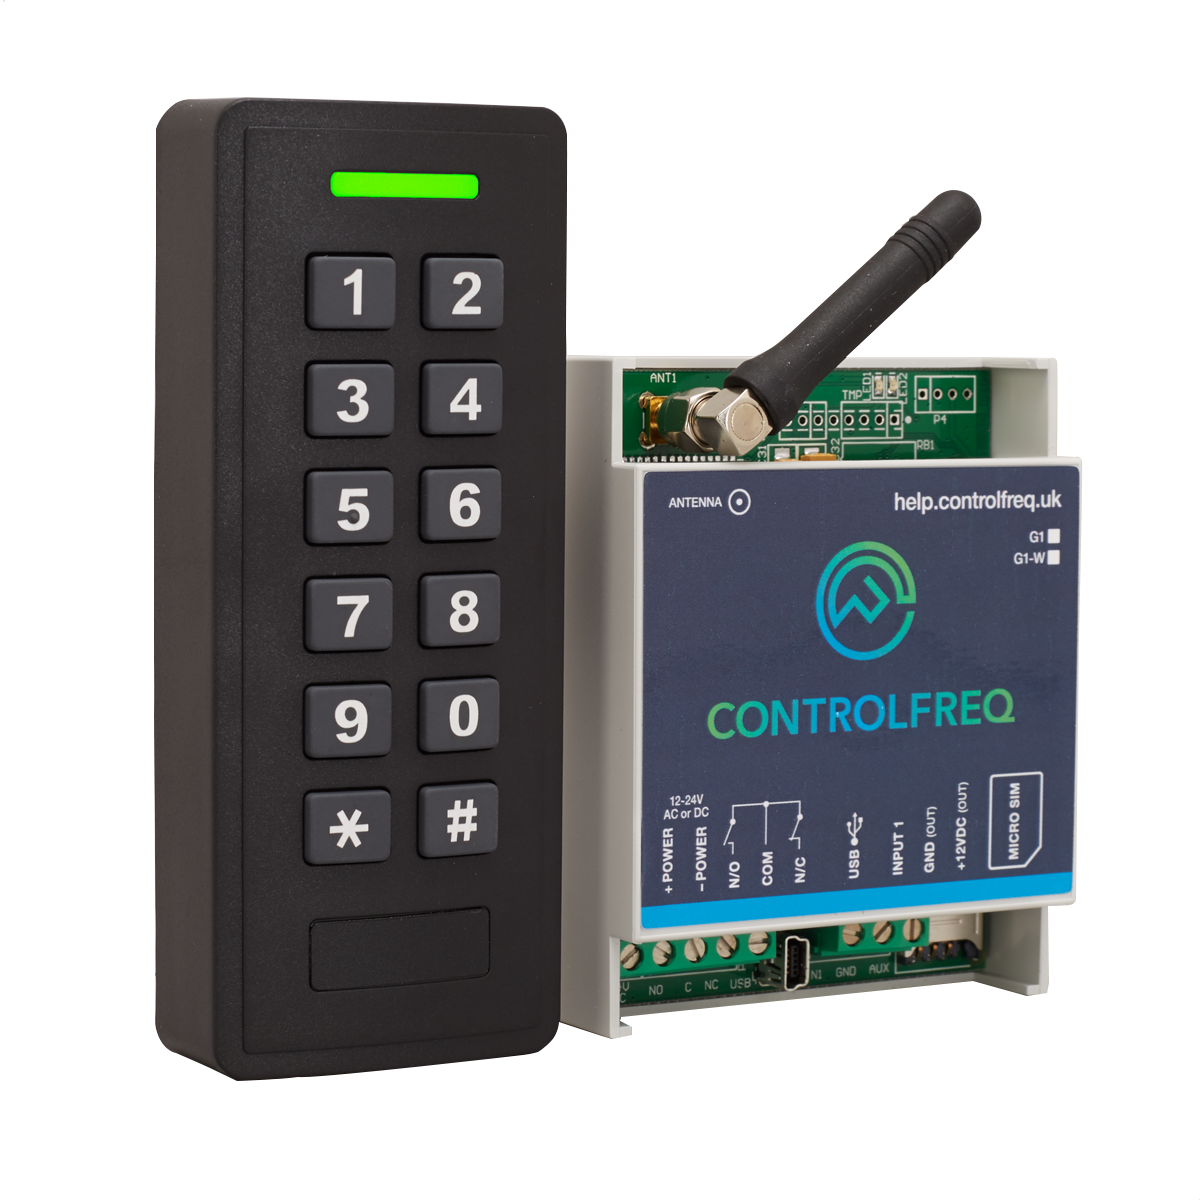 PIN•3G PIN Code Access with Remote User Management